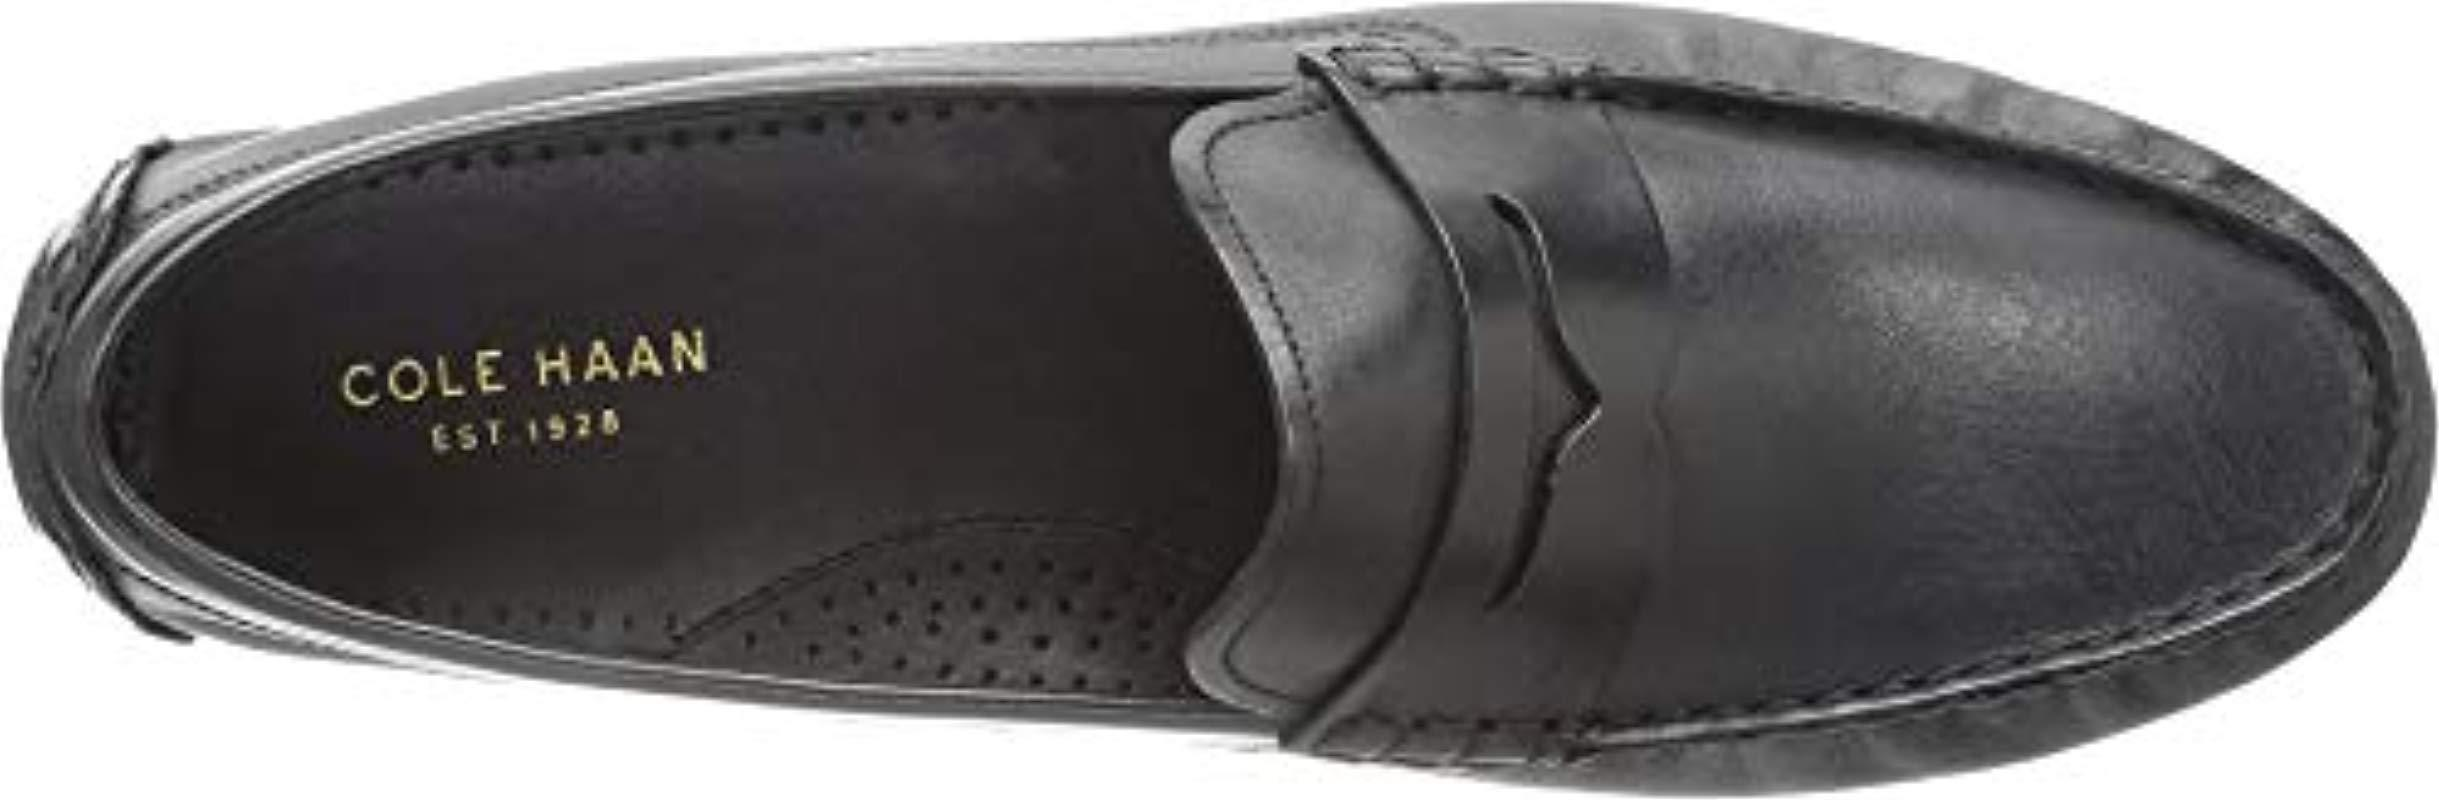 9f02bef59f4 Cole Haan - Black Rodeo Penny Driver - Lyst. View fullscreen